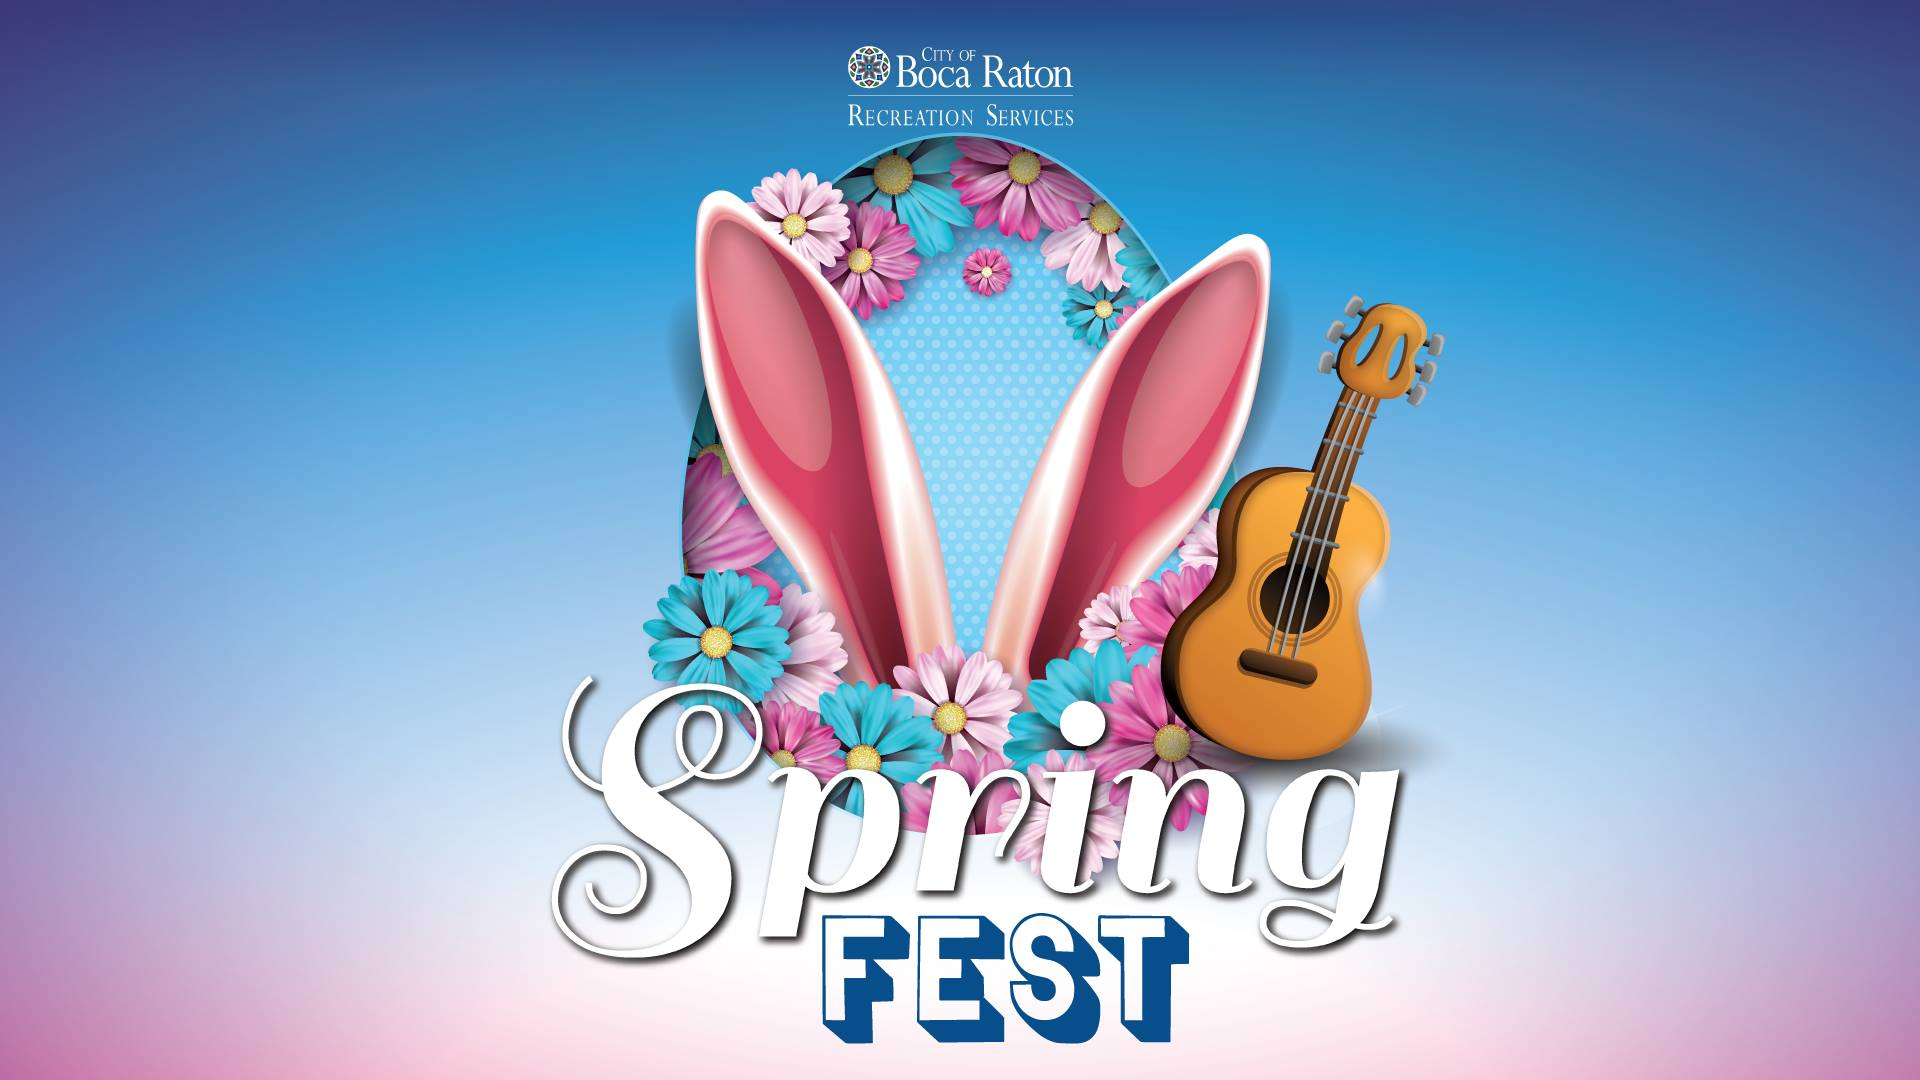 April 6th – Springfest in Boca Raton